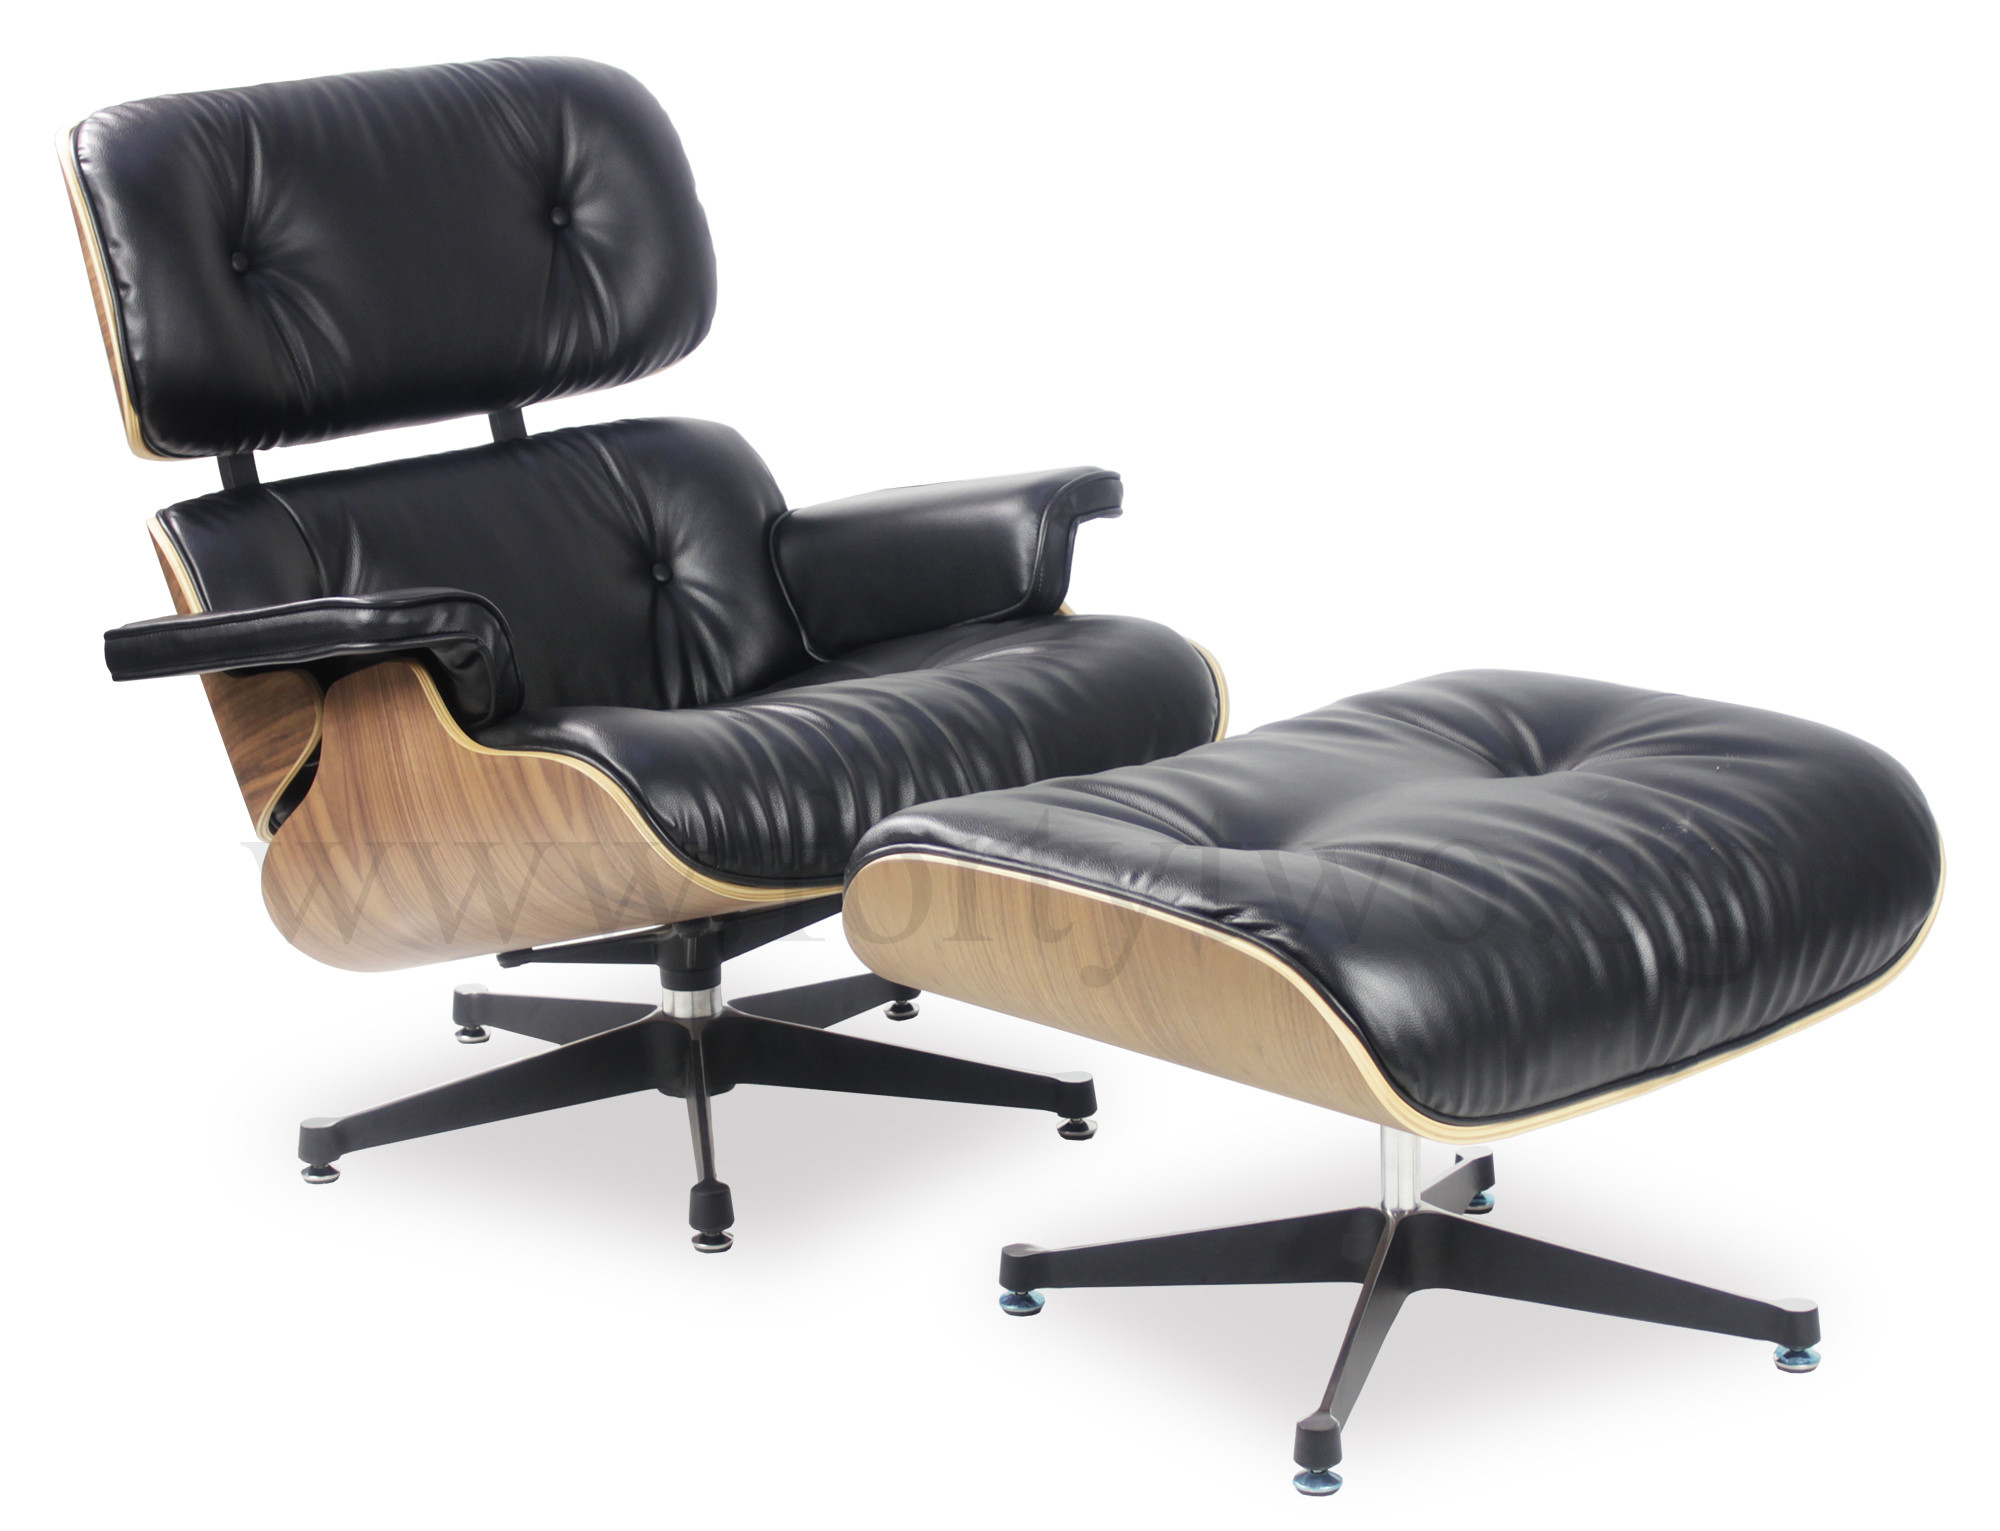 designer replica eames lounge chair black furniture home d cor fortytwo. Black Bedroom Furniture Sets. Home Design Ideas